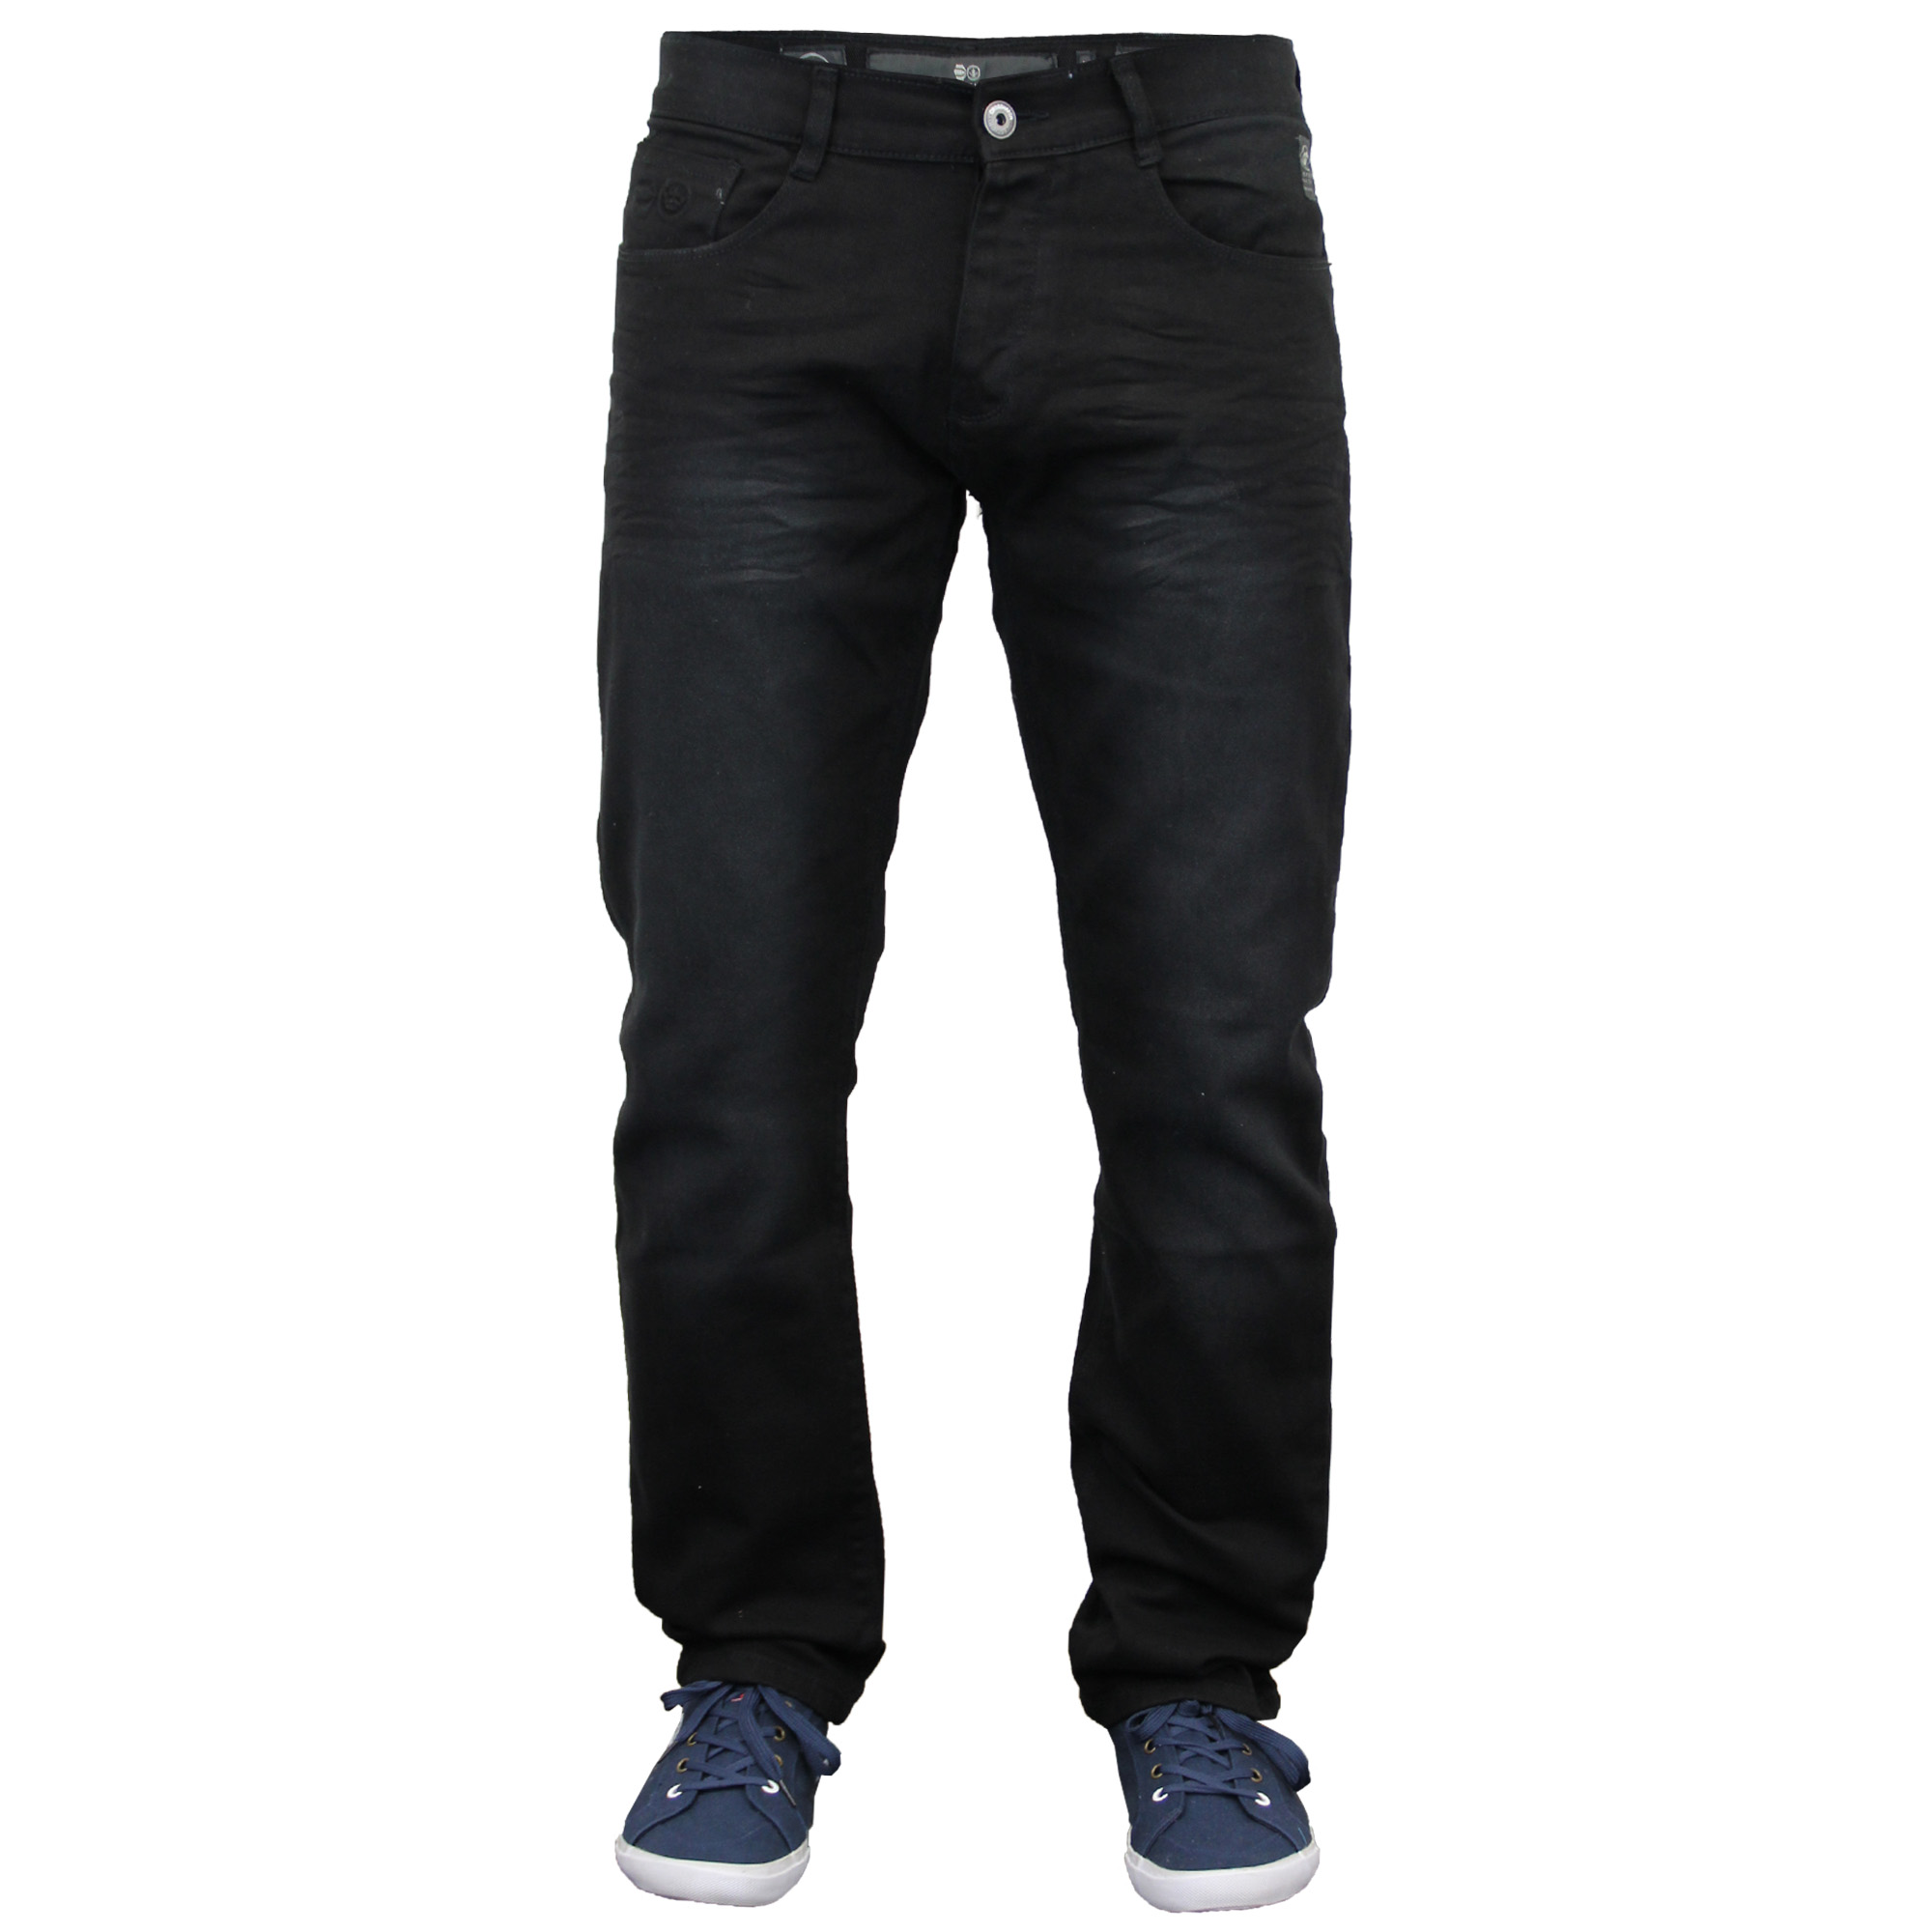 Mens Denim Jeans Crosshatch Pants Skinny Slim Fit Trouser Ruched ...